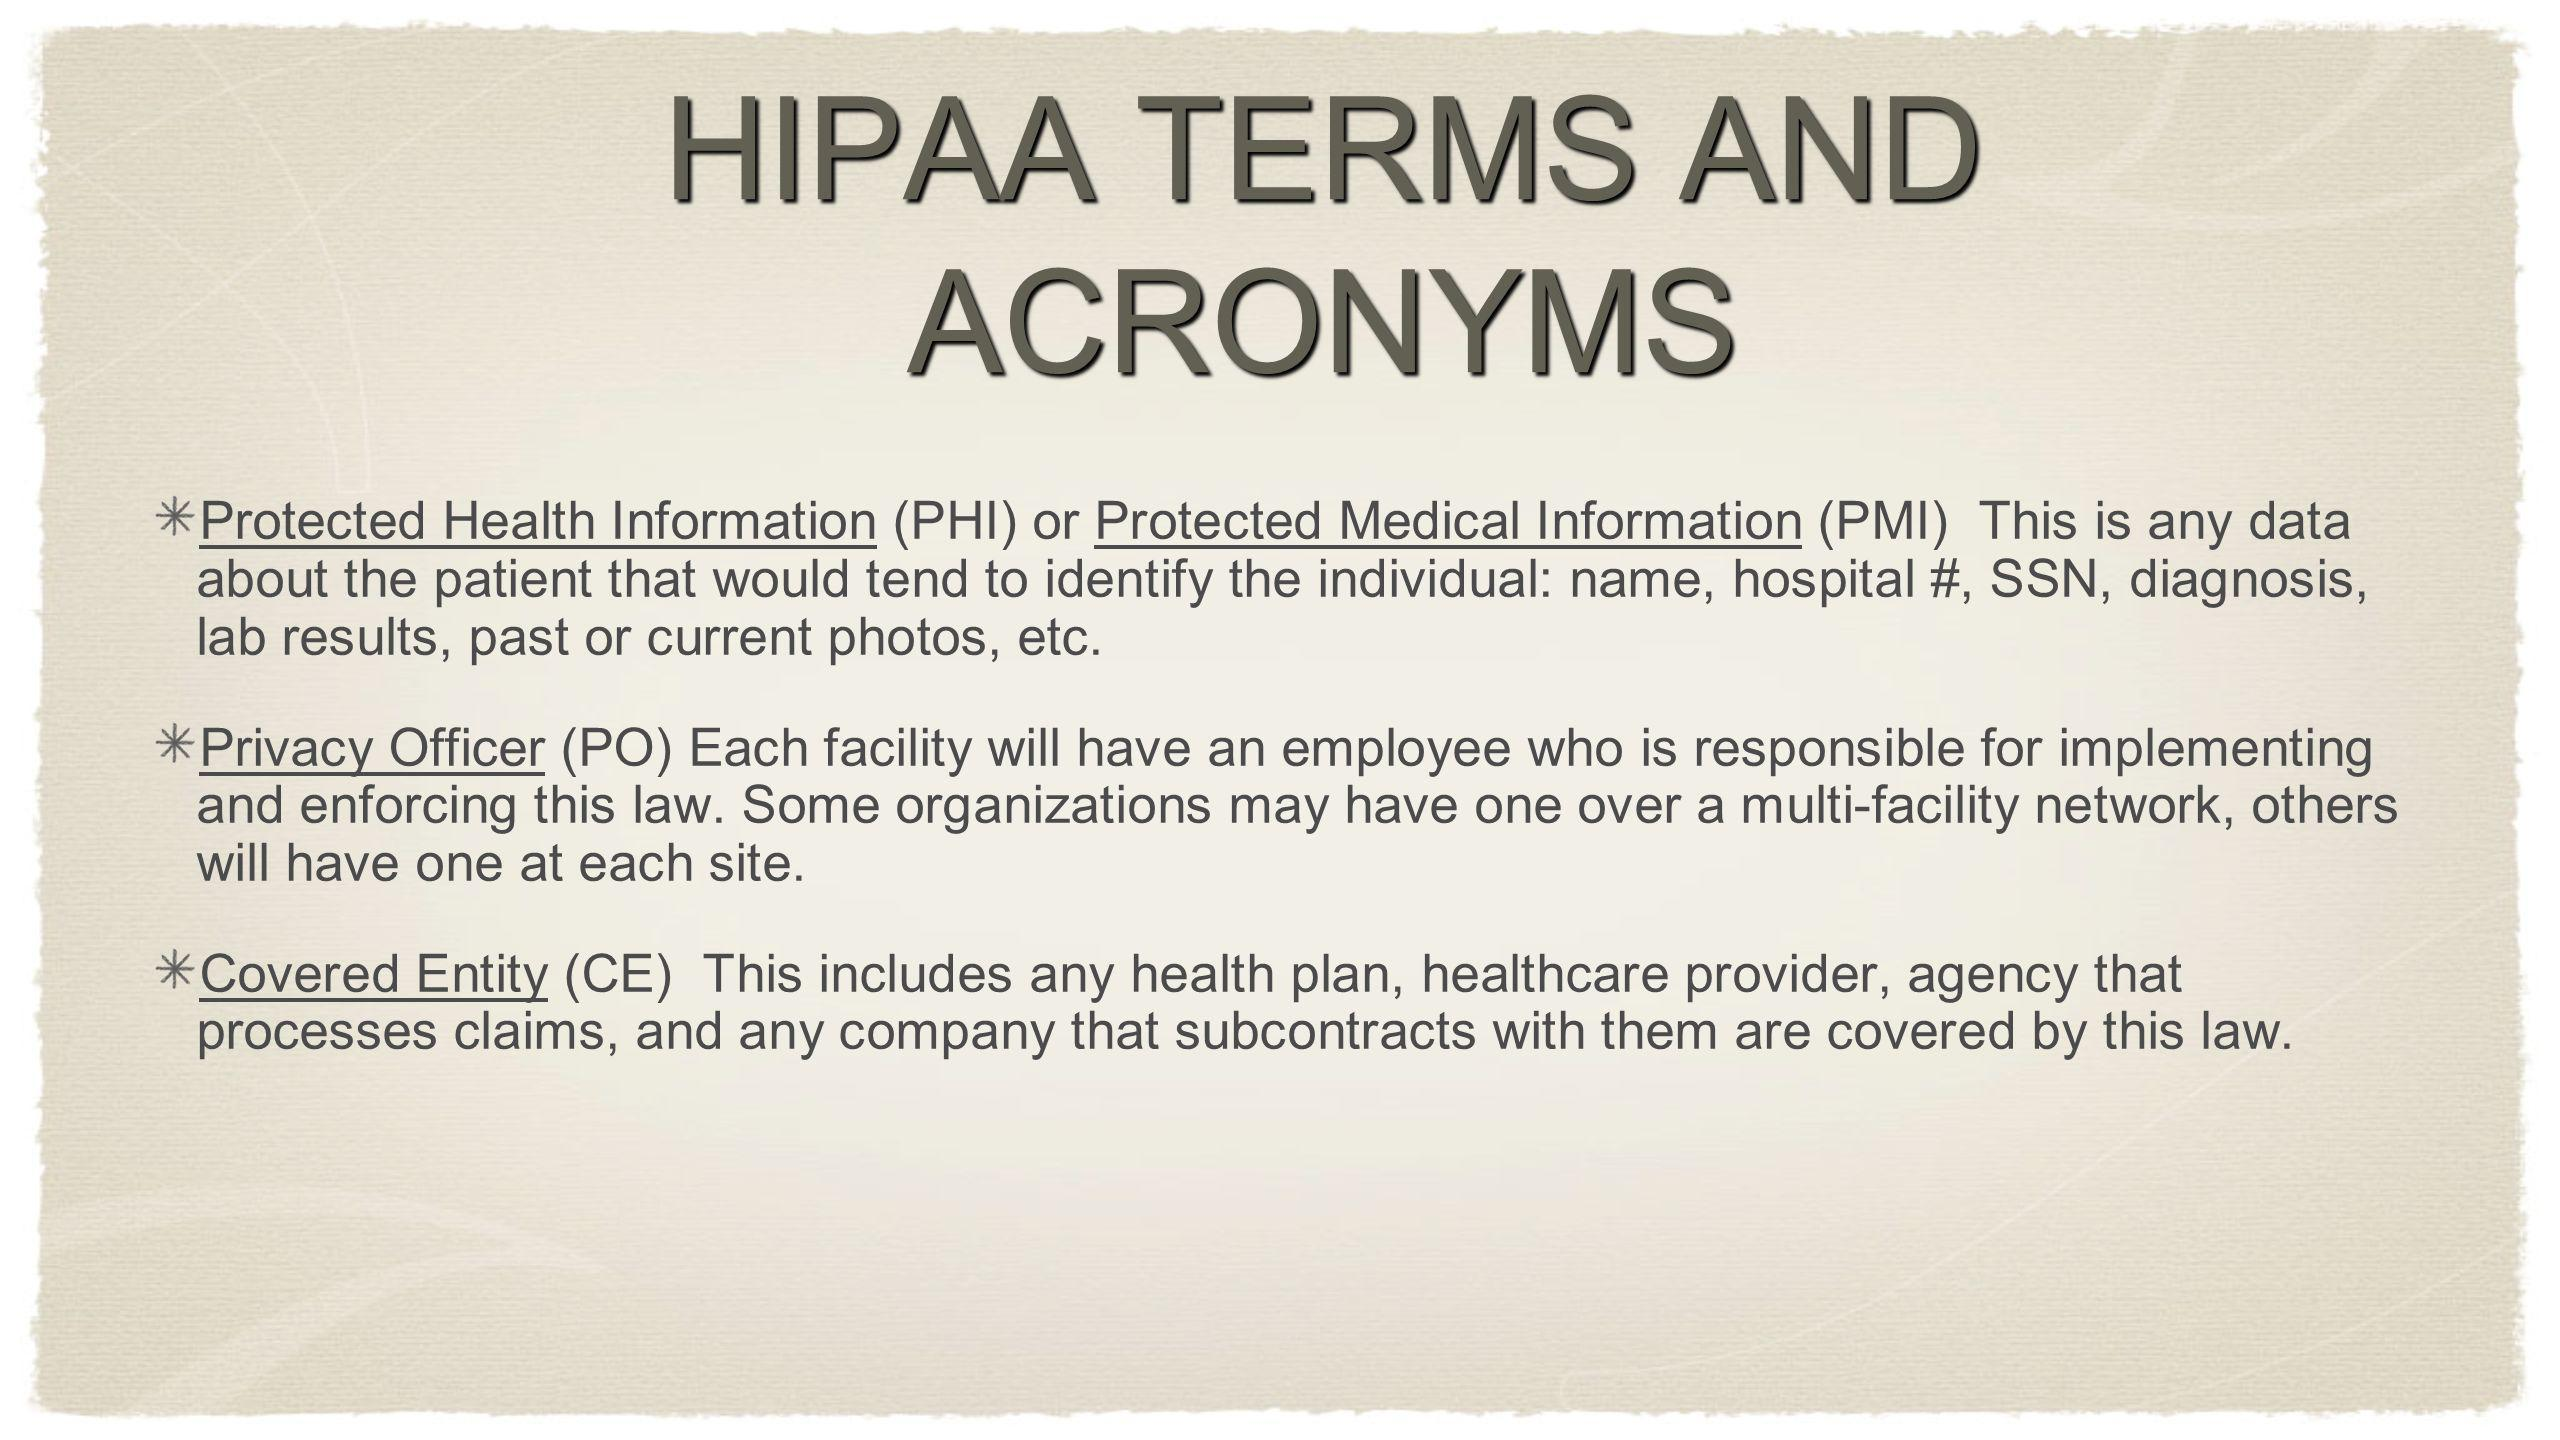 HIPAA TERMS AND ACRONYMS